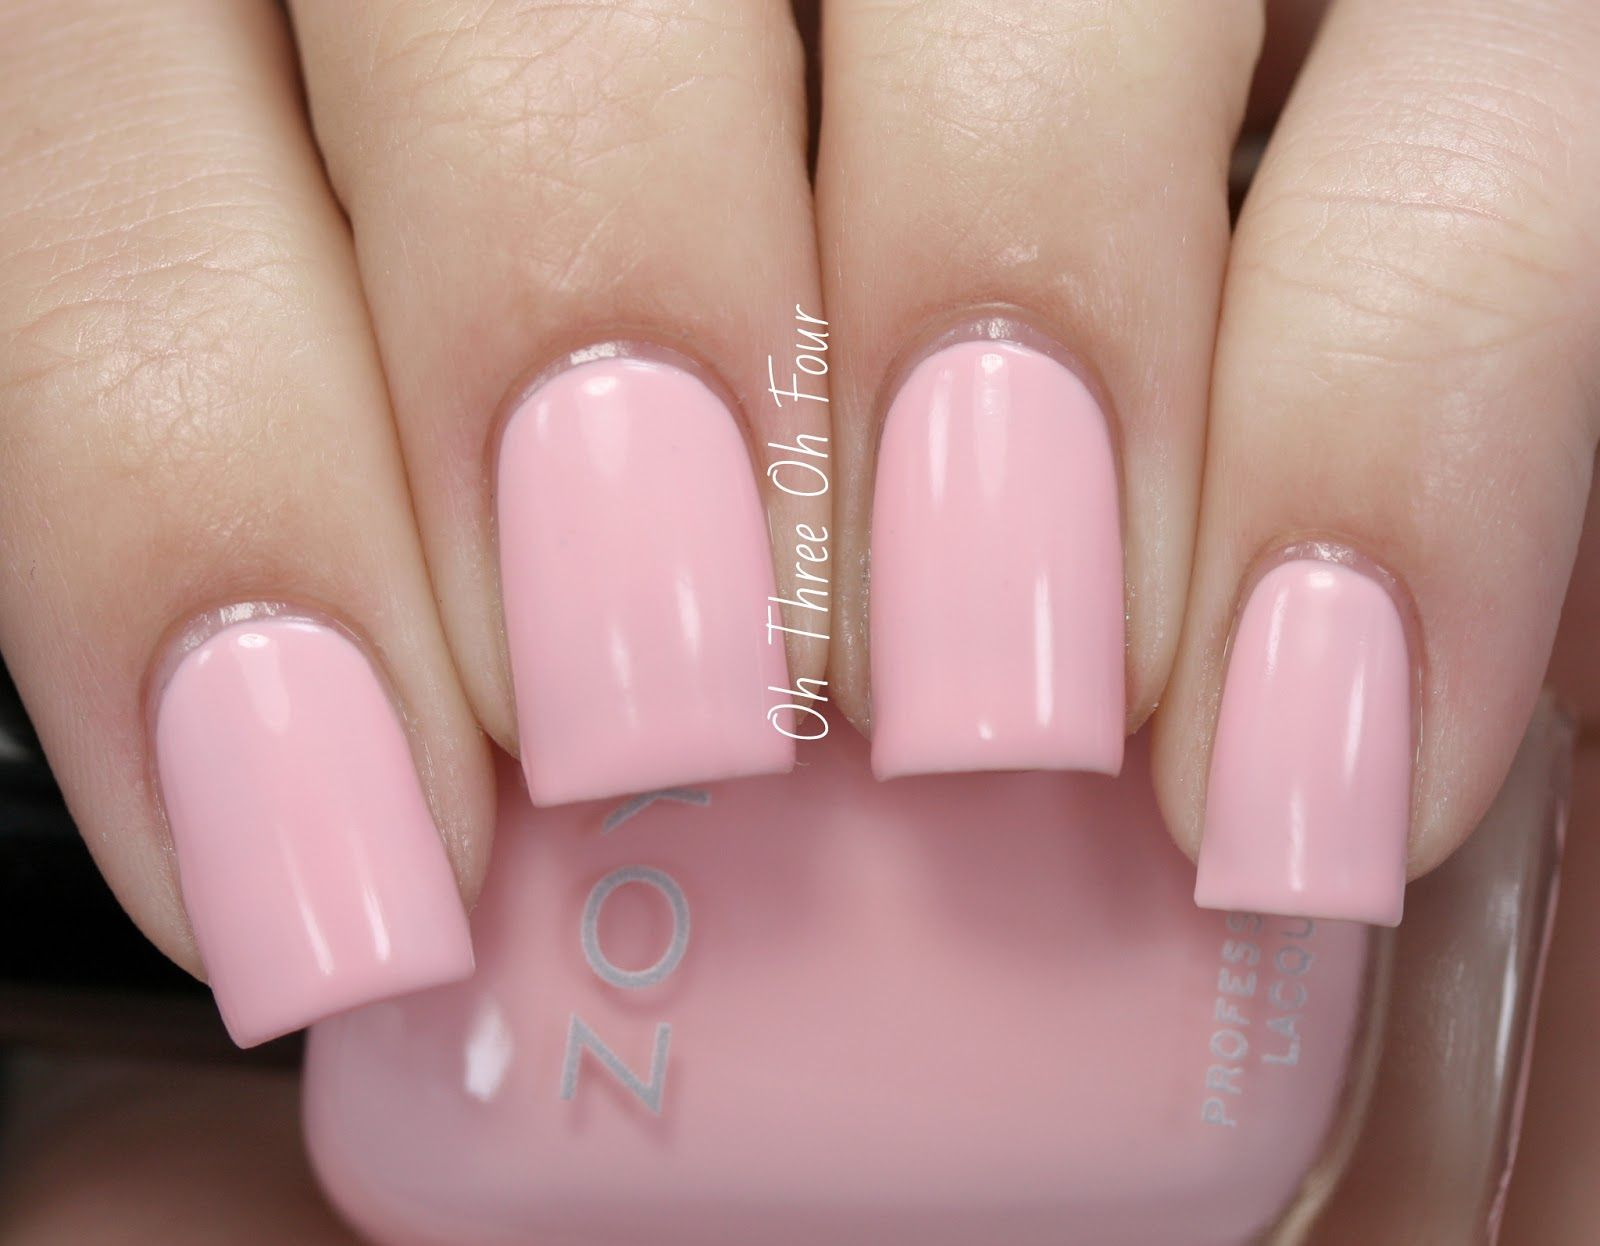 nail to and pink me candy infinite mae so cotton thin light a of manicure polish but shine swatches is this patchy img much opi sheily your delivers smoothness reminds the review first art coat second